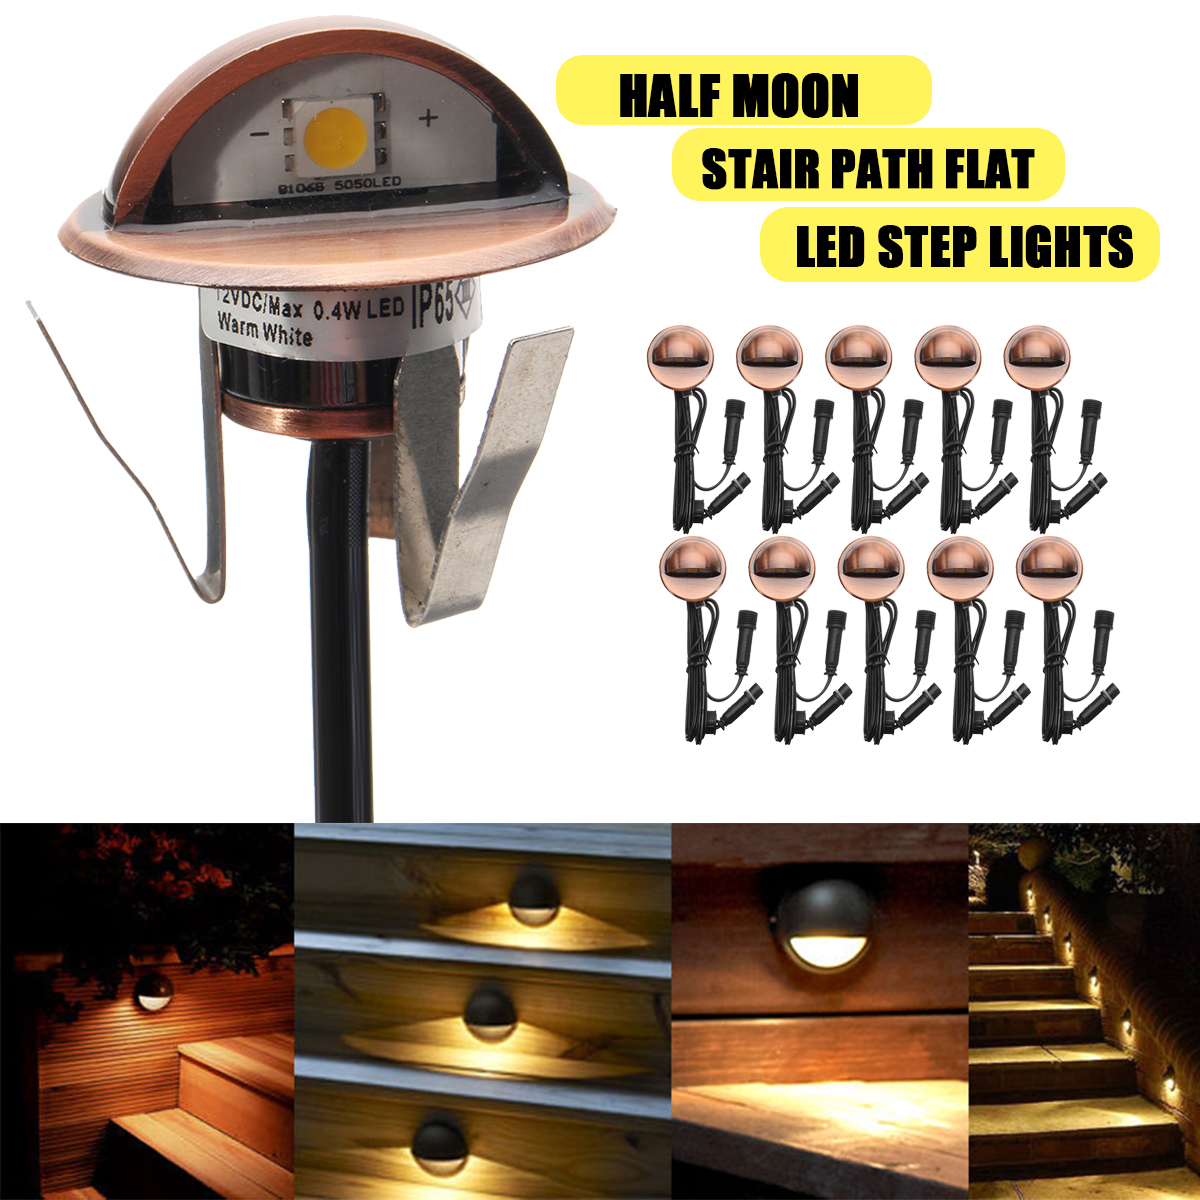 10Pcs 12V Half- moon LED Step SMD5050 IP65 Light Indoor Outdoor For Garden Stair Recessed Landscape Pathway Park Decor Lamp 10pcs led deck light waterproof stainless steel recessed underground lamp dc12v spotlight stair pathway garden light